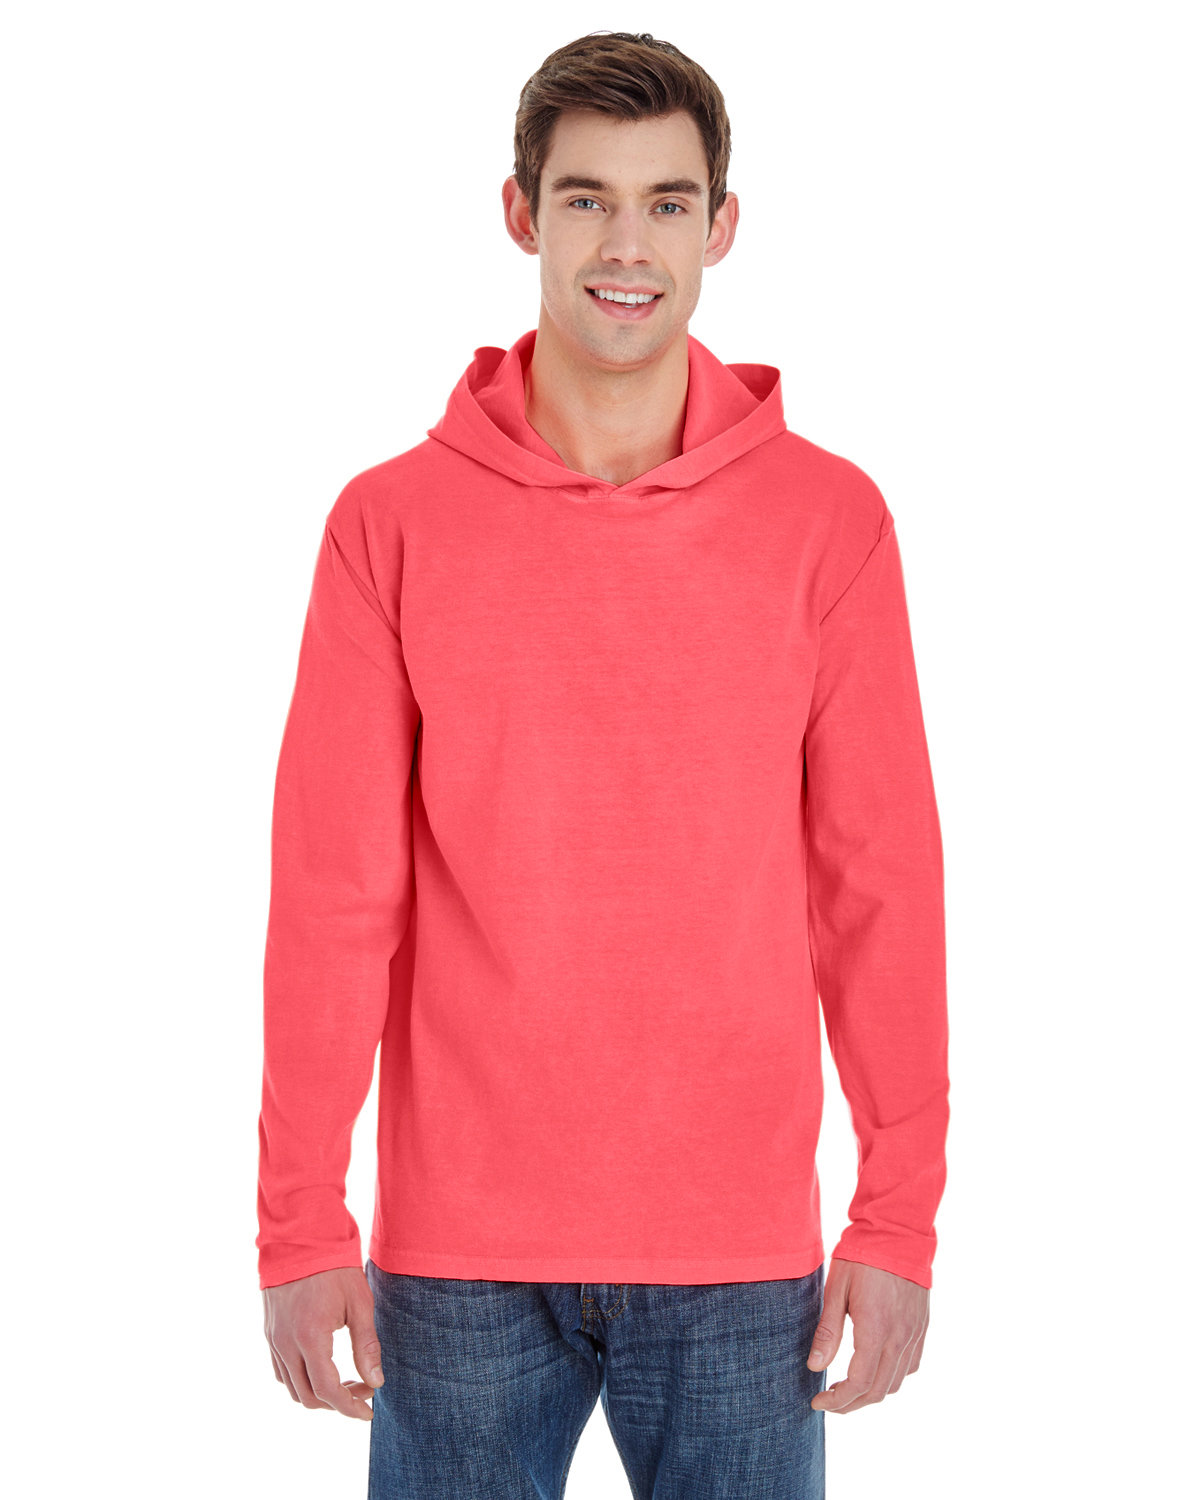 Comfort Colors Adult Heavyweight Long-Sleeve Hooded T-Shirt NEON RED ORANGE